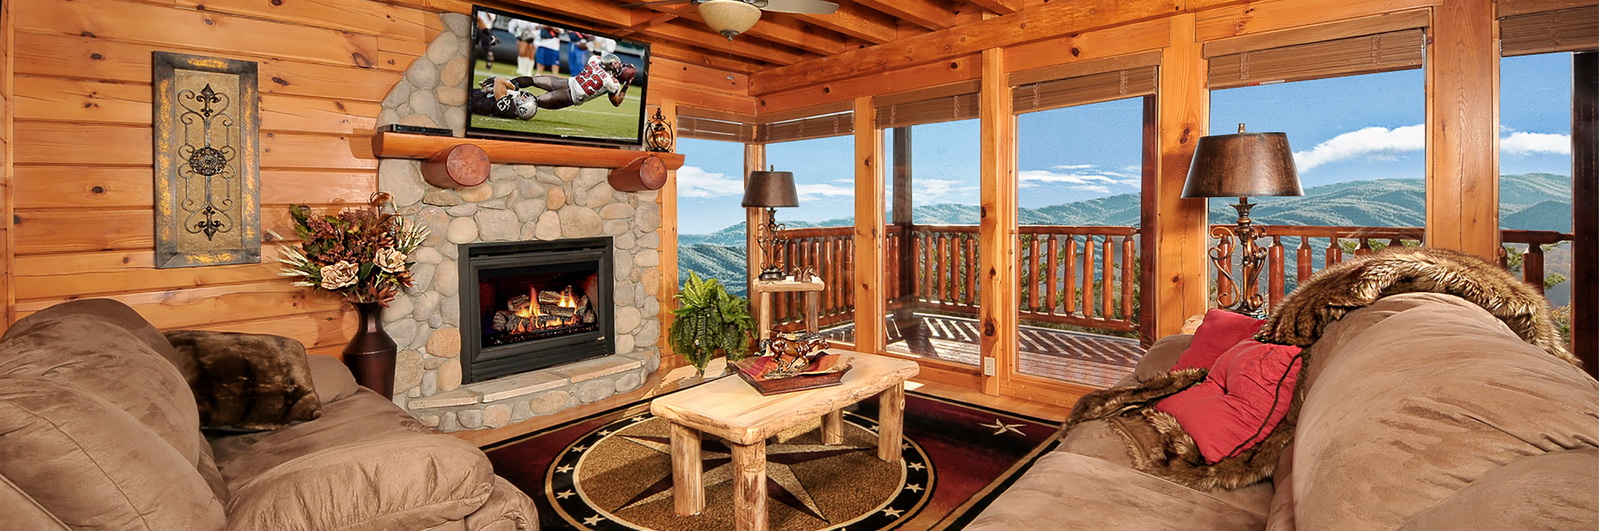 tn in sets bedroom design of tennessee a cabins cabin contemporary fresh hd cheap mountain gatlinburg hideaway best